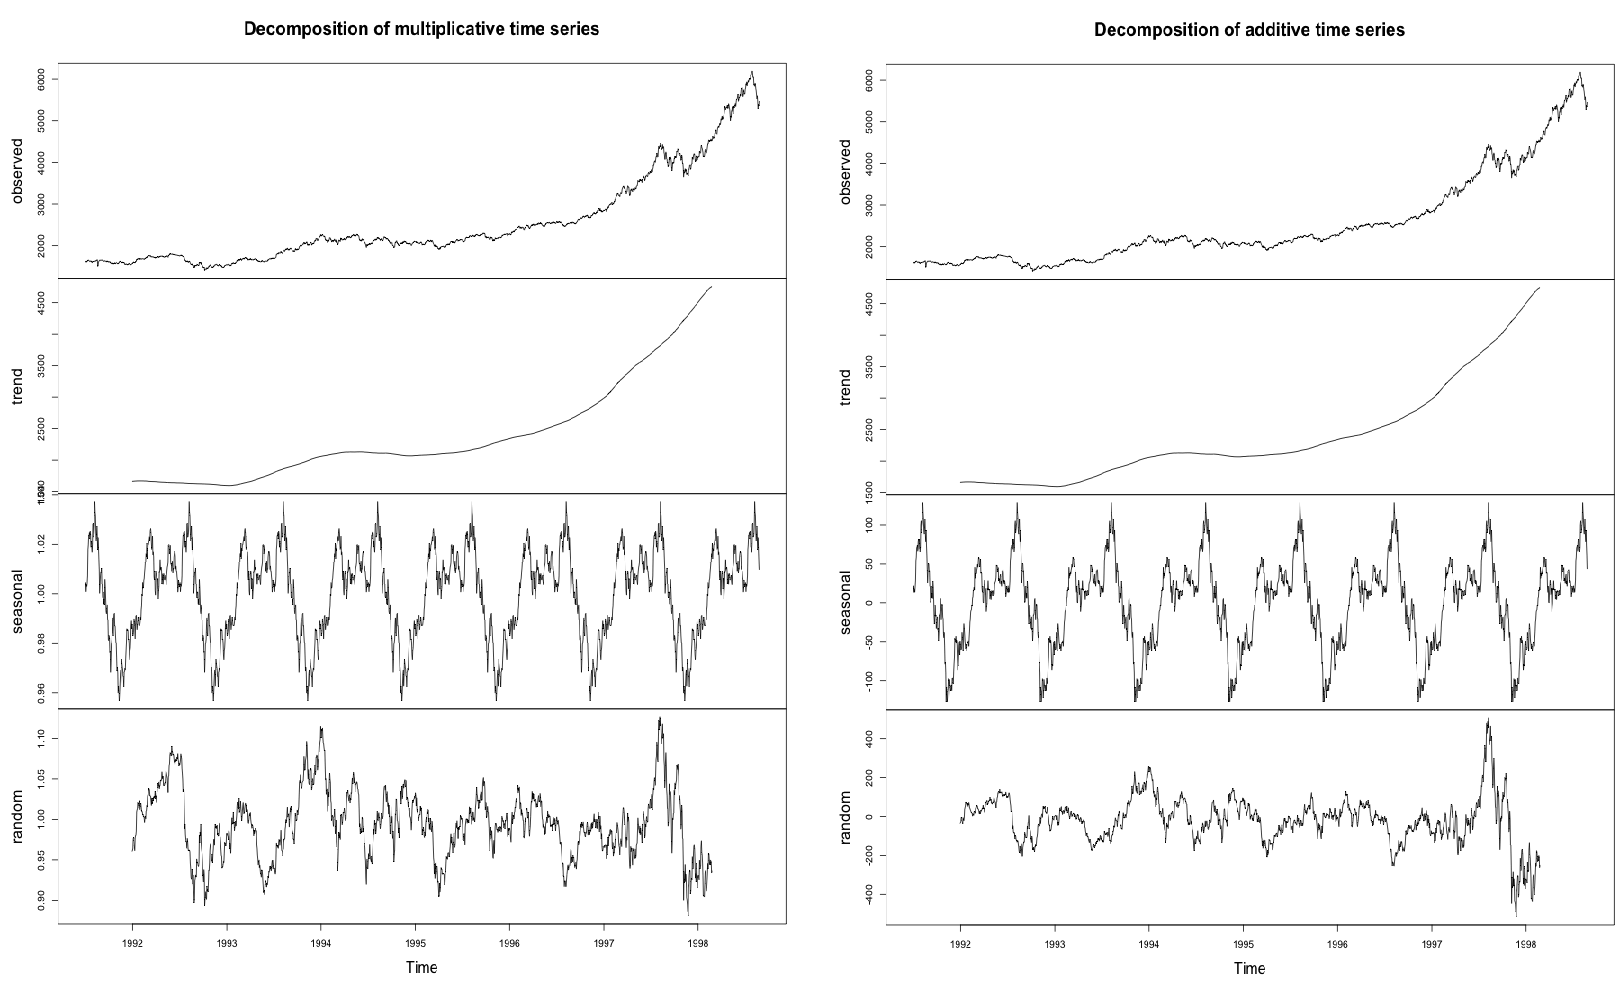 time series analysis the multiplicative decomposition method A time series exhibits no trend, no seasonal variation, and no cycle however, the average measurement is changing slowly over time the most appropriate way to model this time series would be to use a simple exponential smoothing.